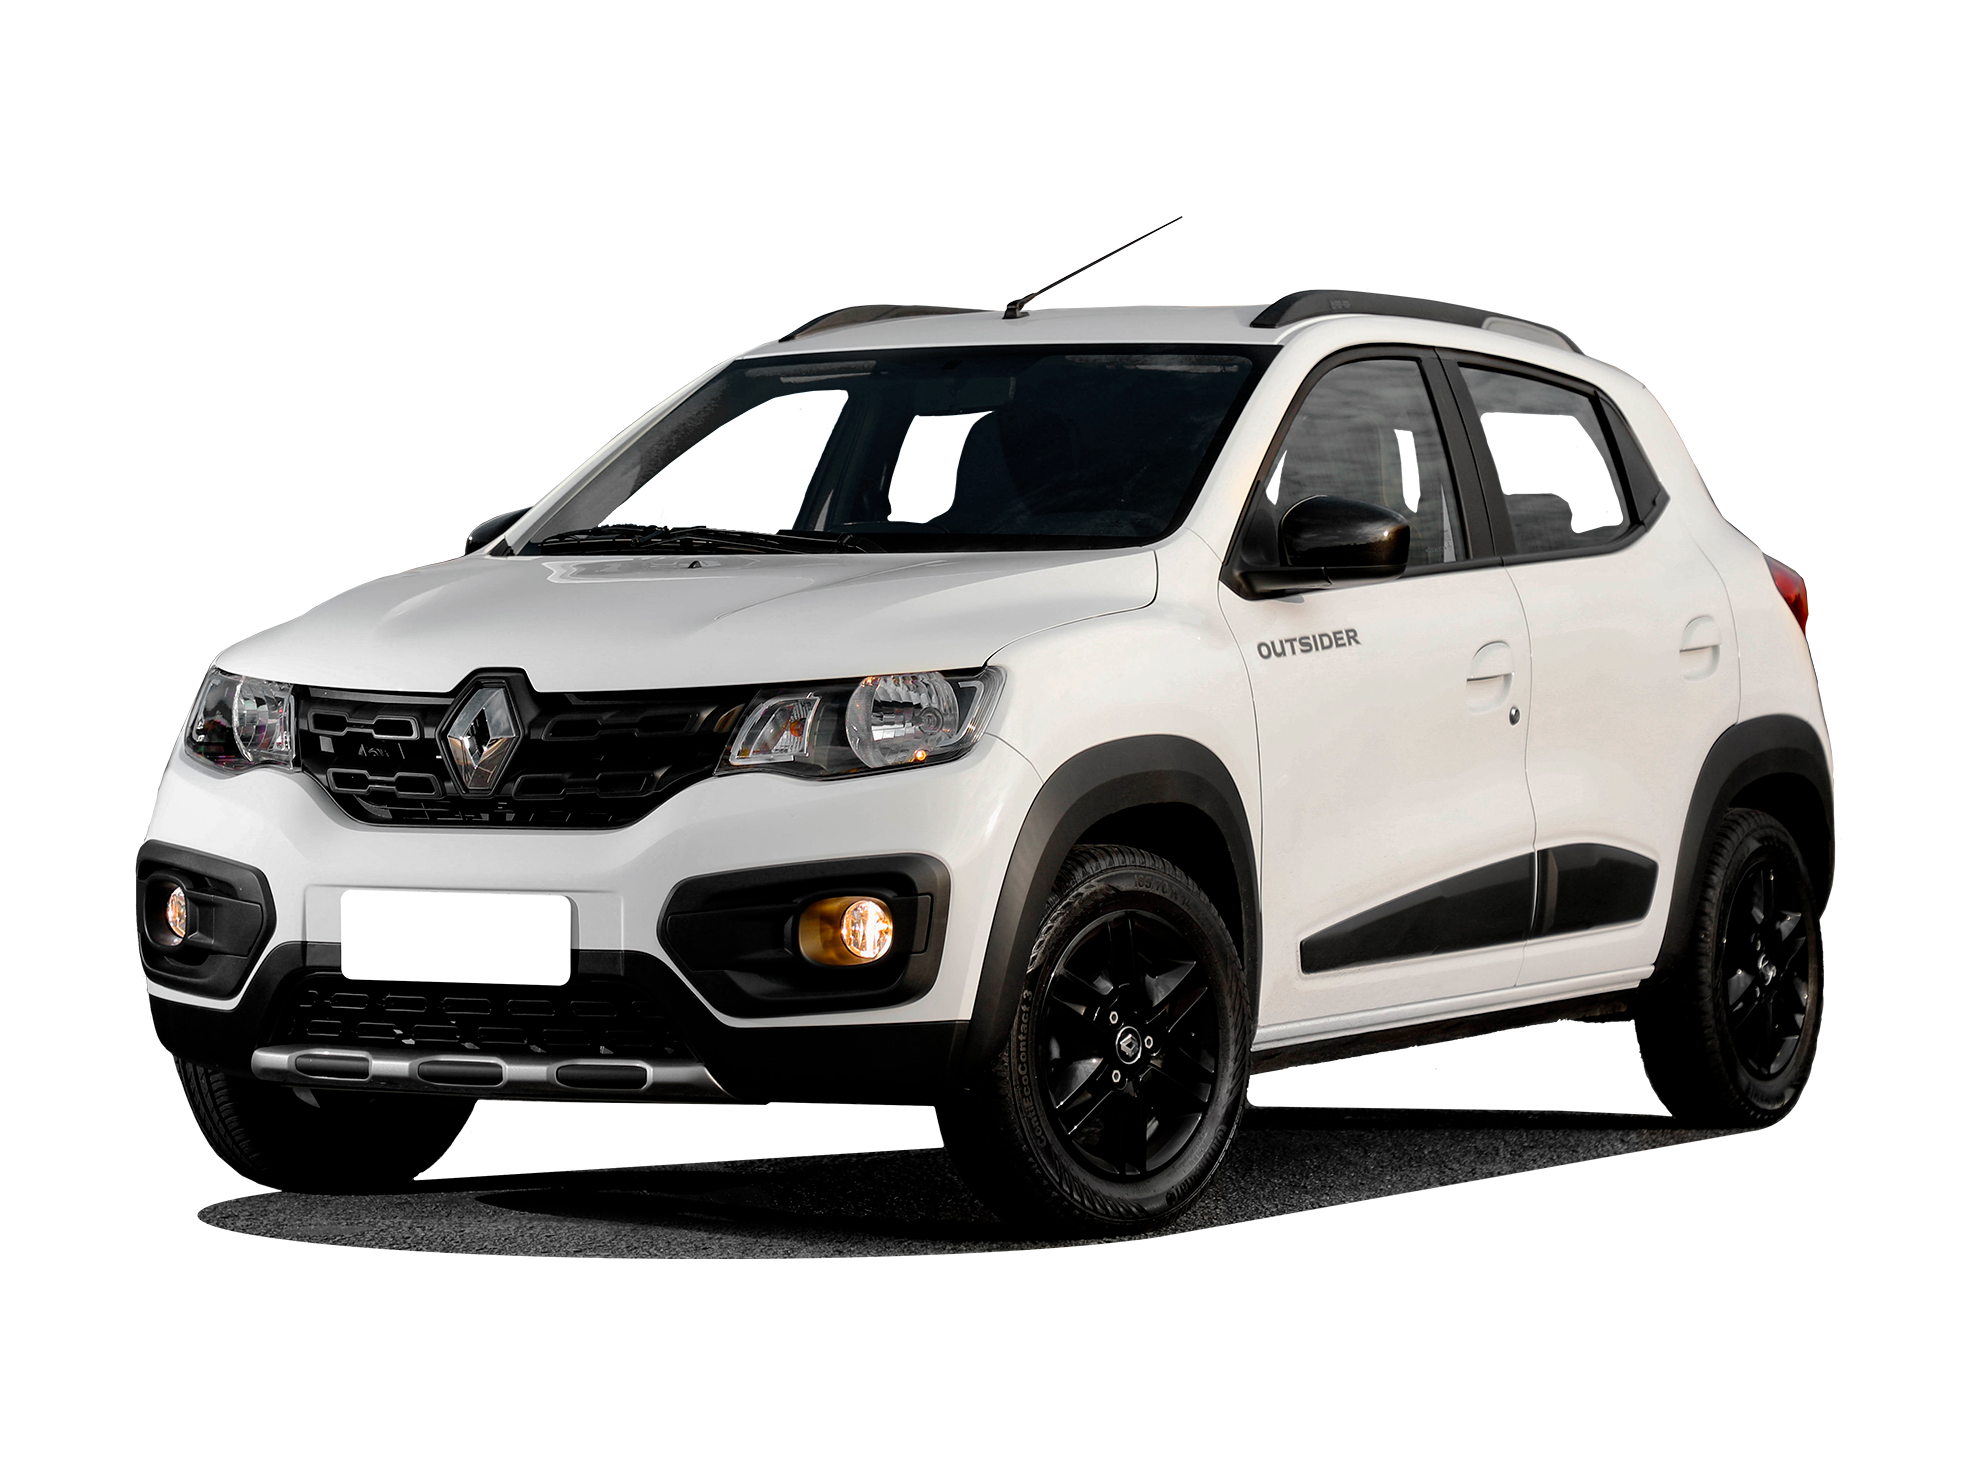 RENAULT - KWID - 1.0 12V SCE FLEX OUTSIDER MANUAL